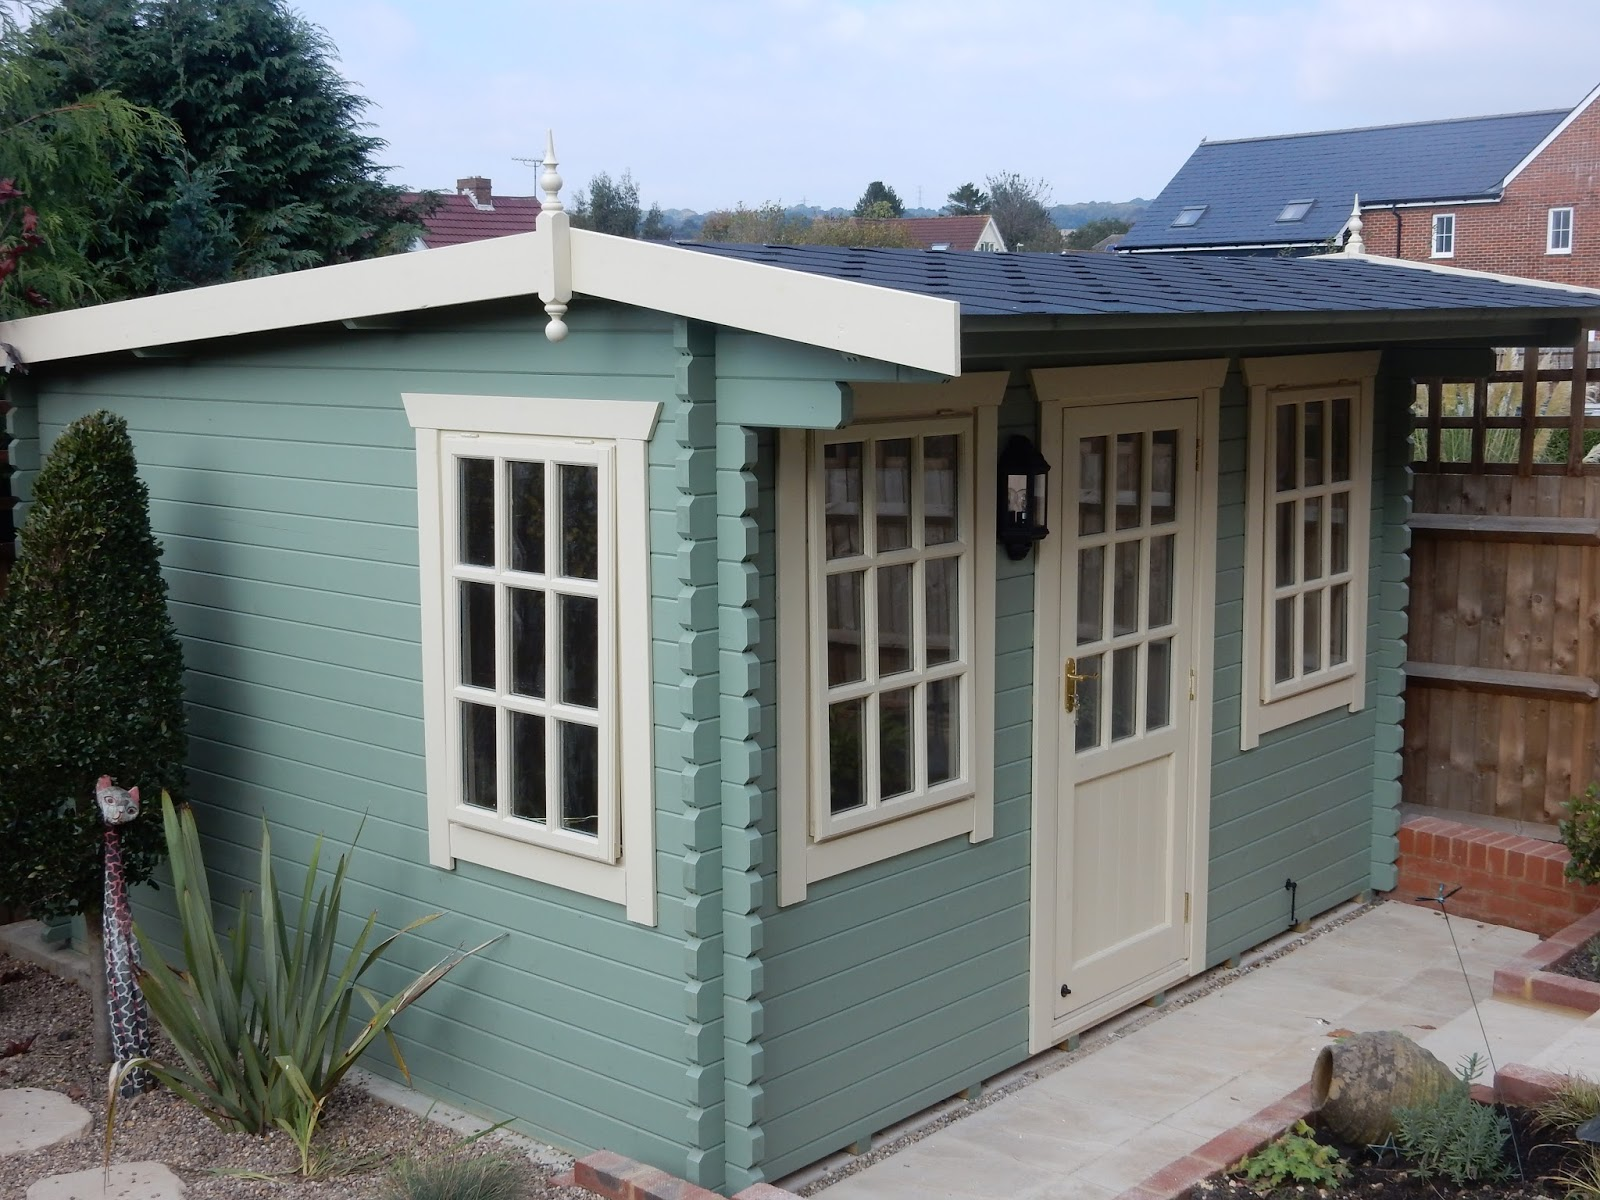 Southwick 39 s garden offices 12 39 x 11 39 fully insulated for Insulated garden office